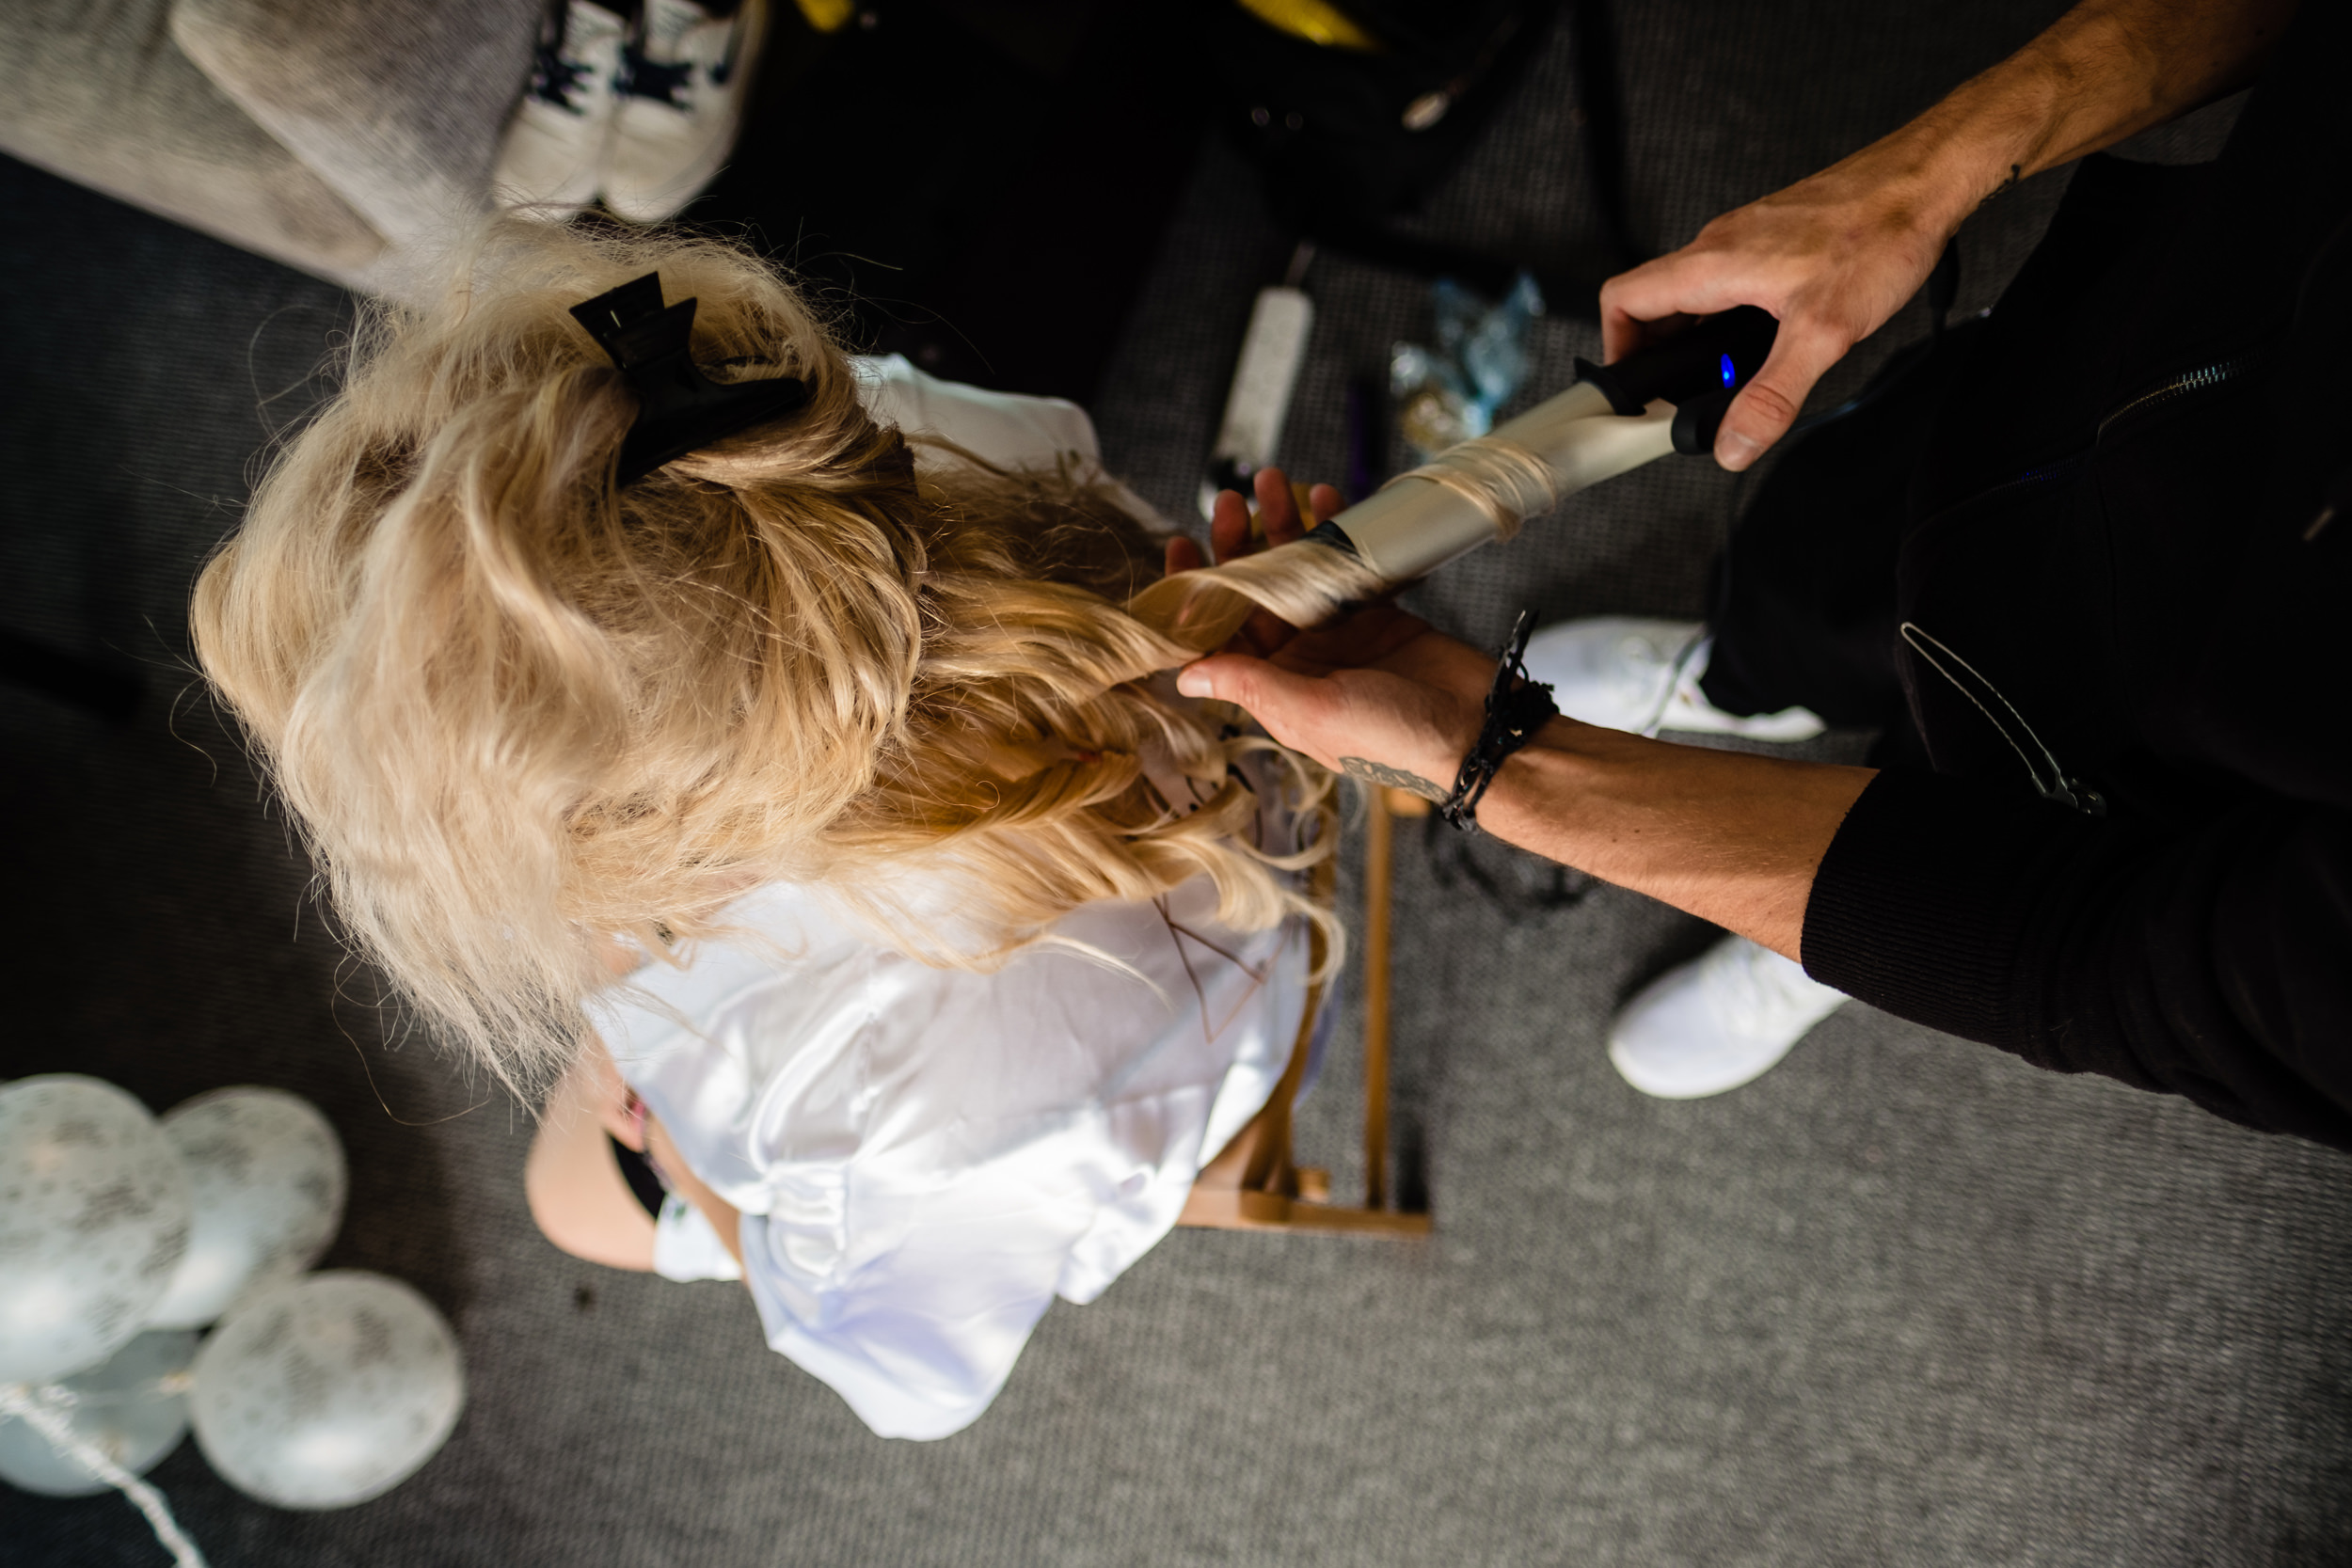 bride getting her hair curled. plough inn, hathersage wedding photography by emma and rich.